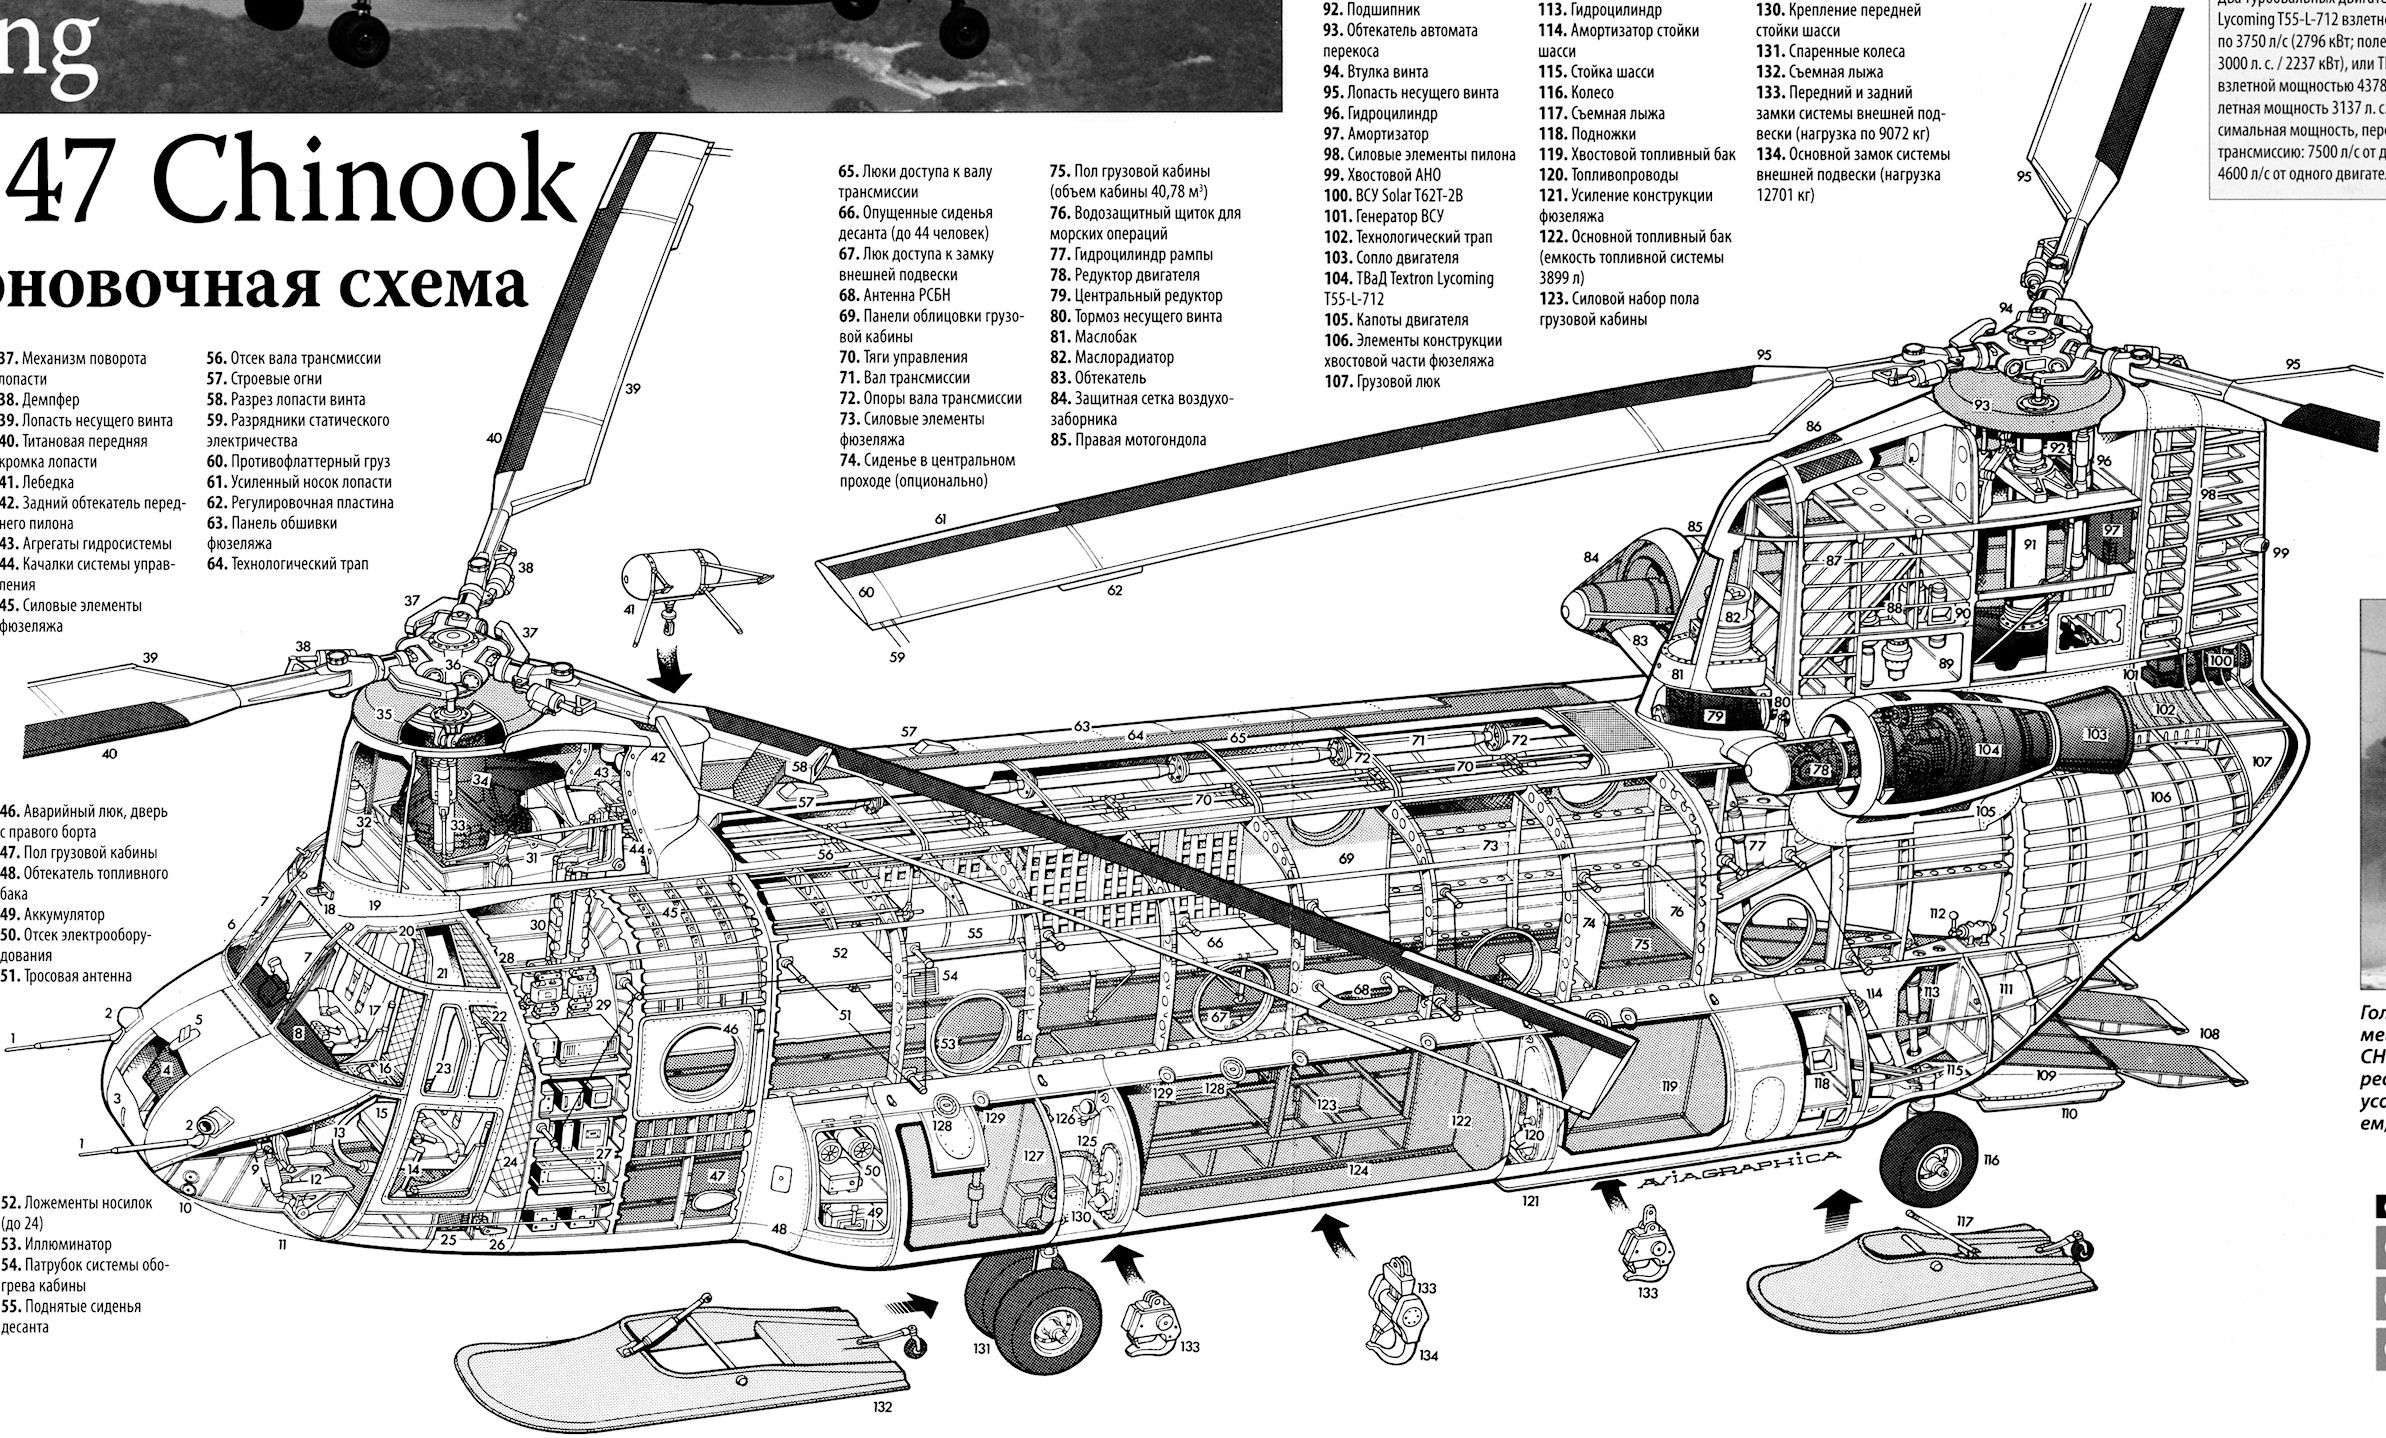 hight resolution of aircarft cutaway boeing ch 47 chinook chinook helicopters attack helicopter military helicopter